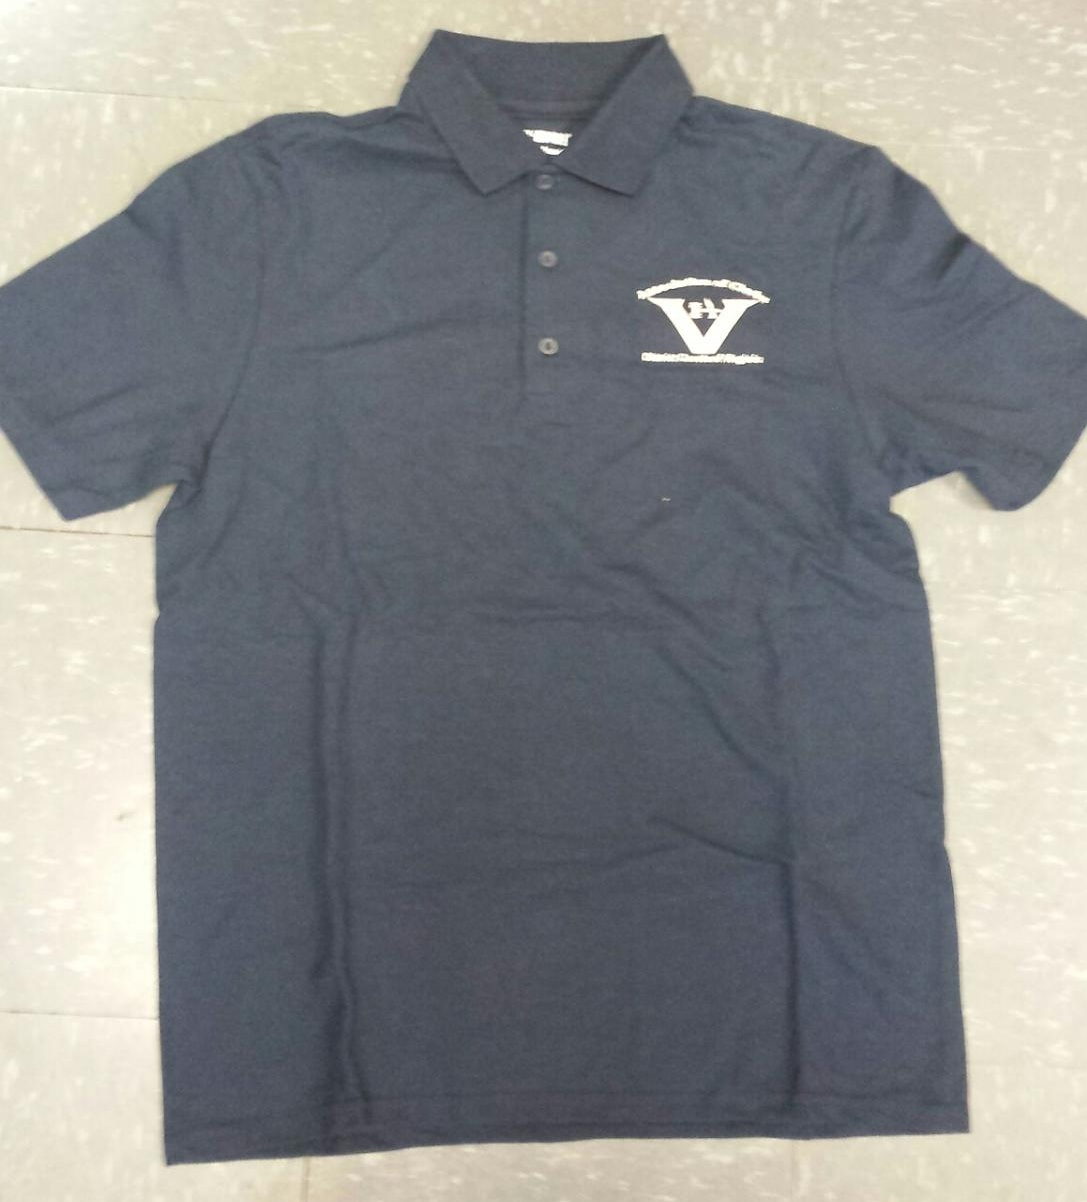 SALE! Blue Polo Shirt with Embroidered Logo $3.00    Available in very limited quantities - sizes Small & 2XL